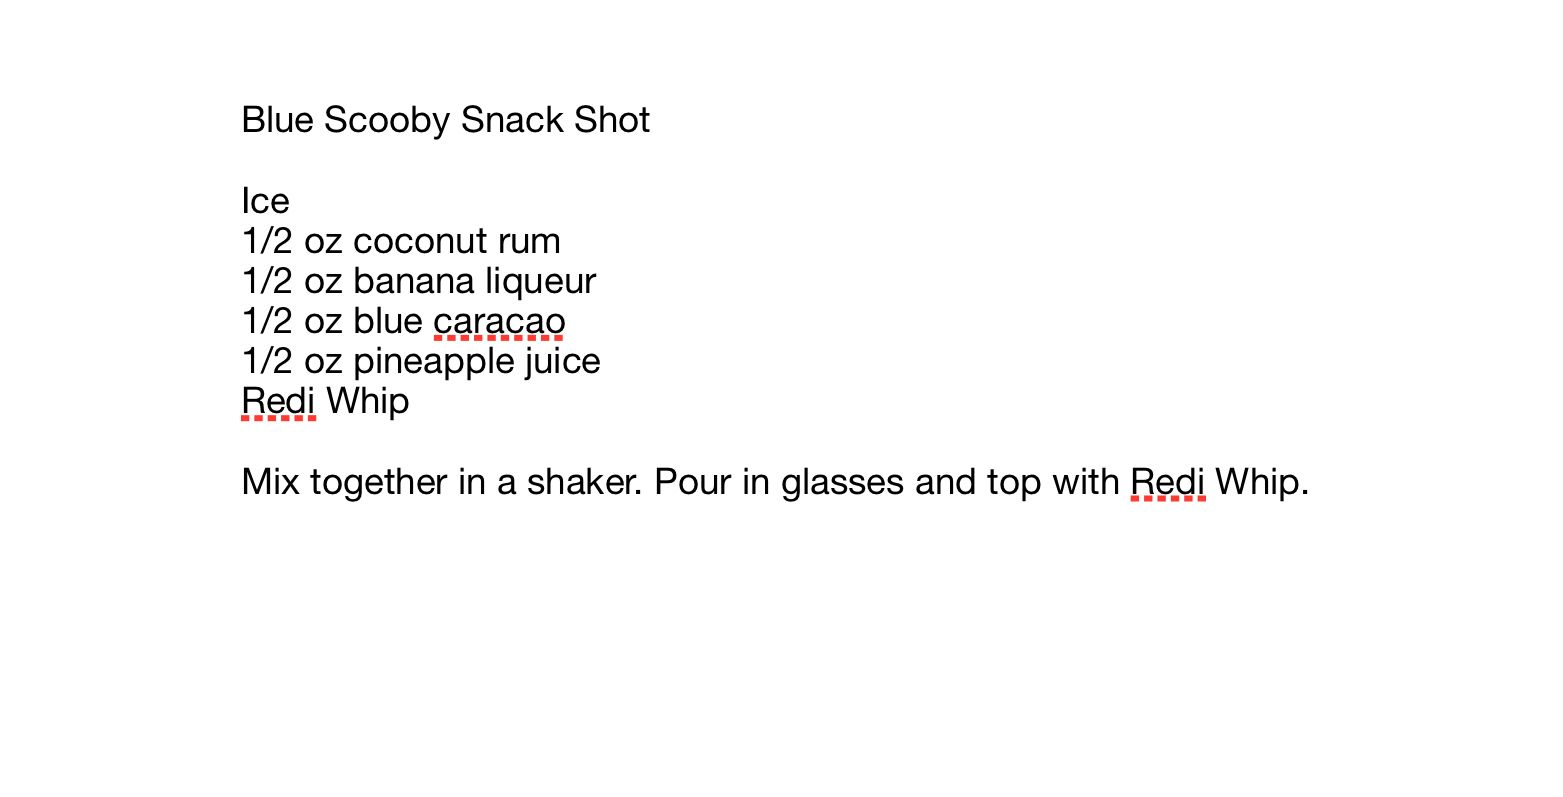 Blue Scooby Snack Shots Scooby Snack Shot Coconut Rum Redi Whip